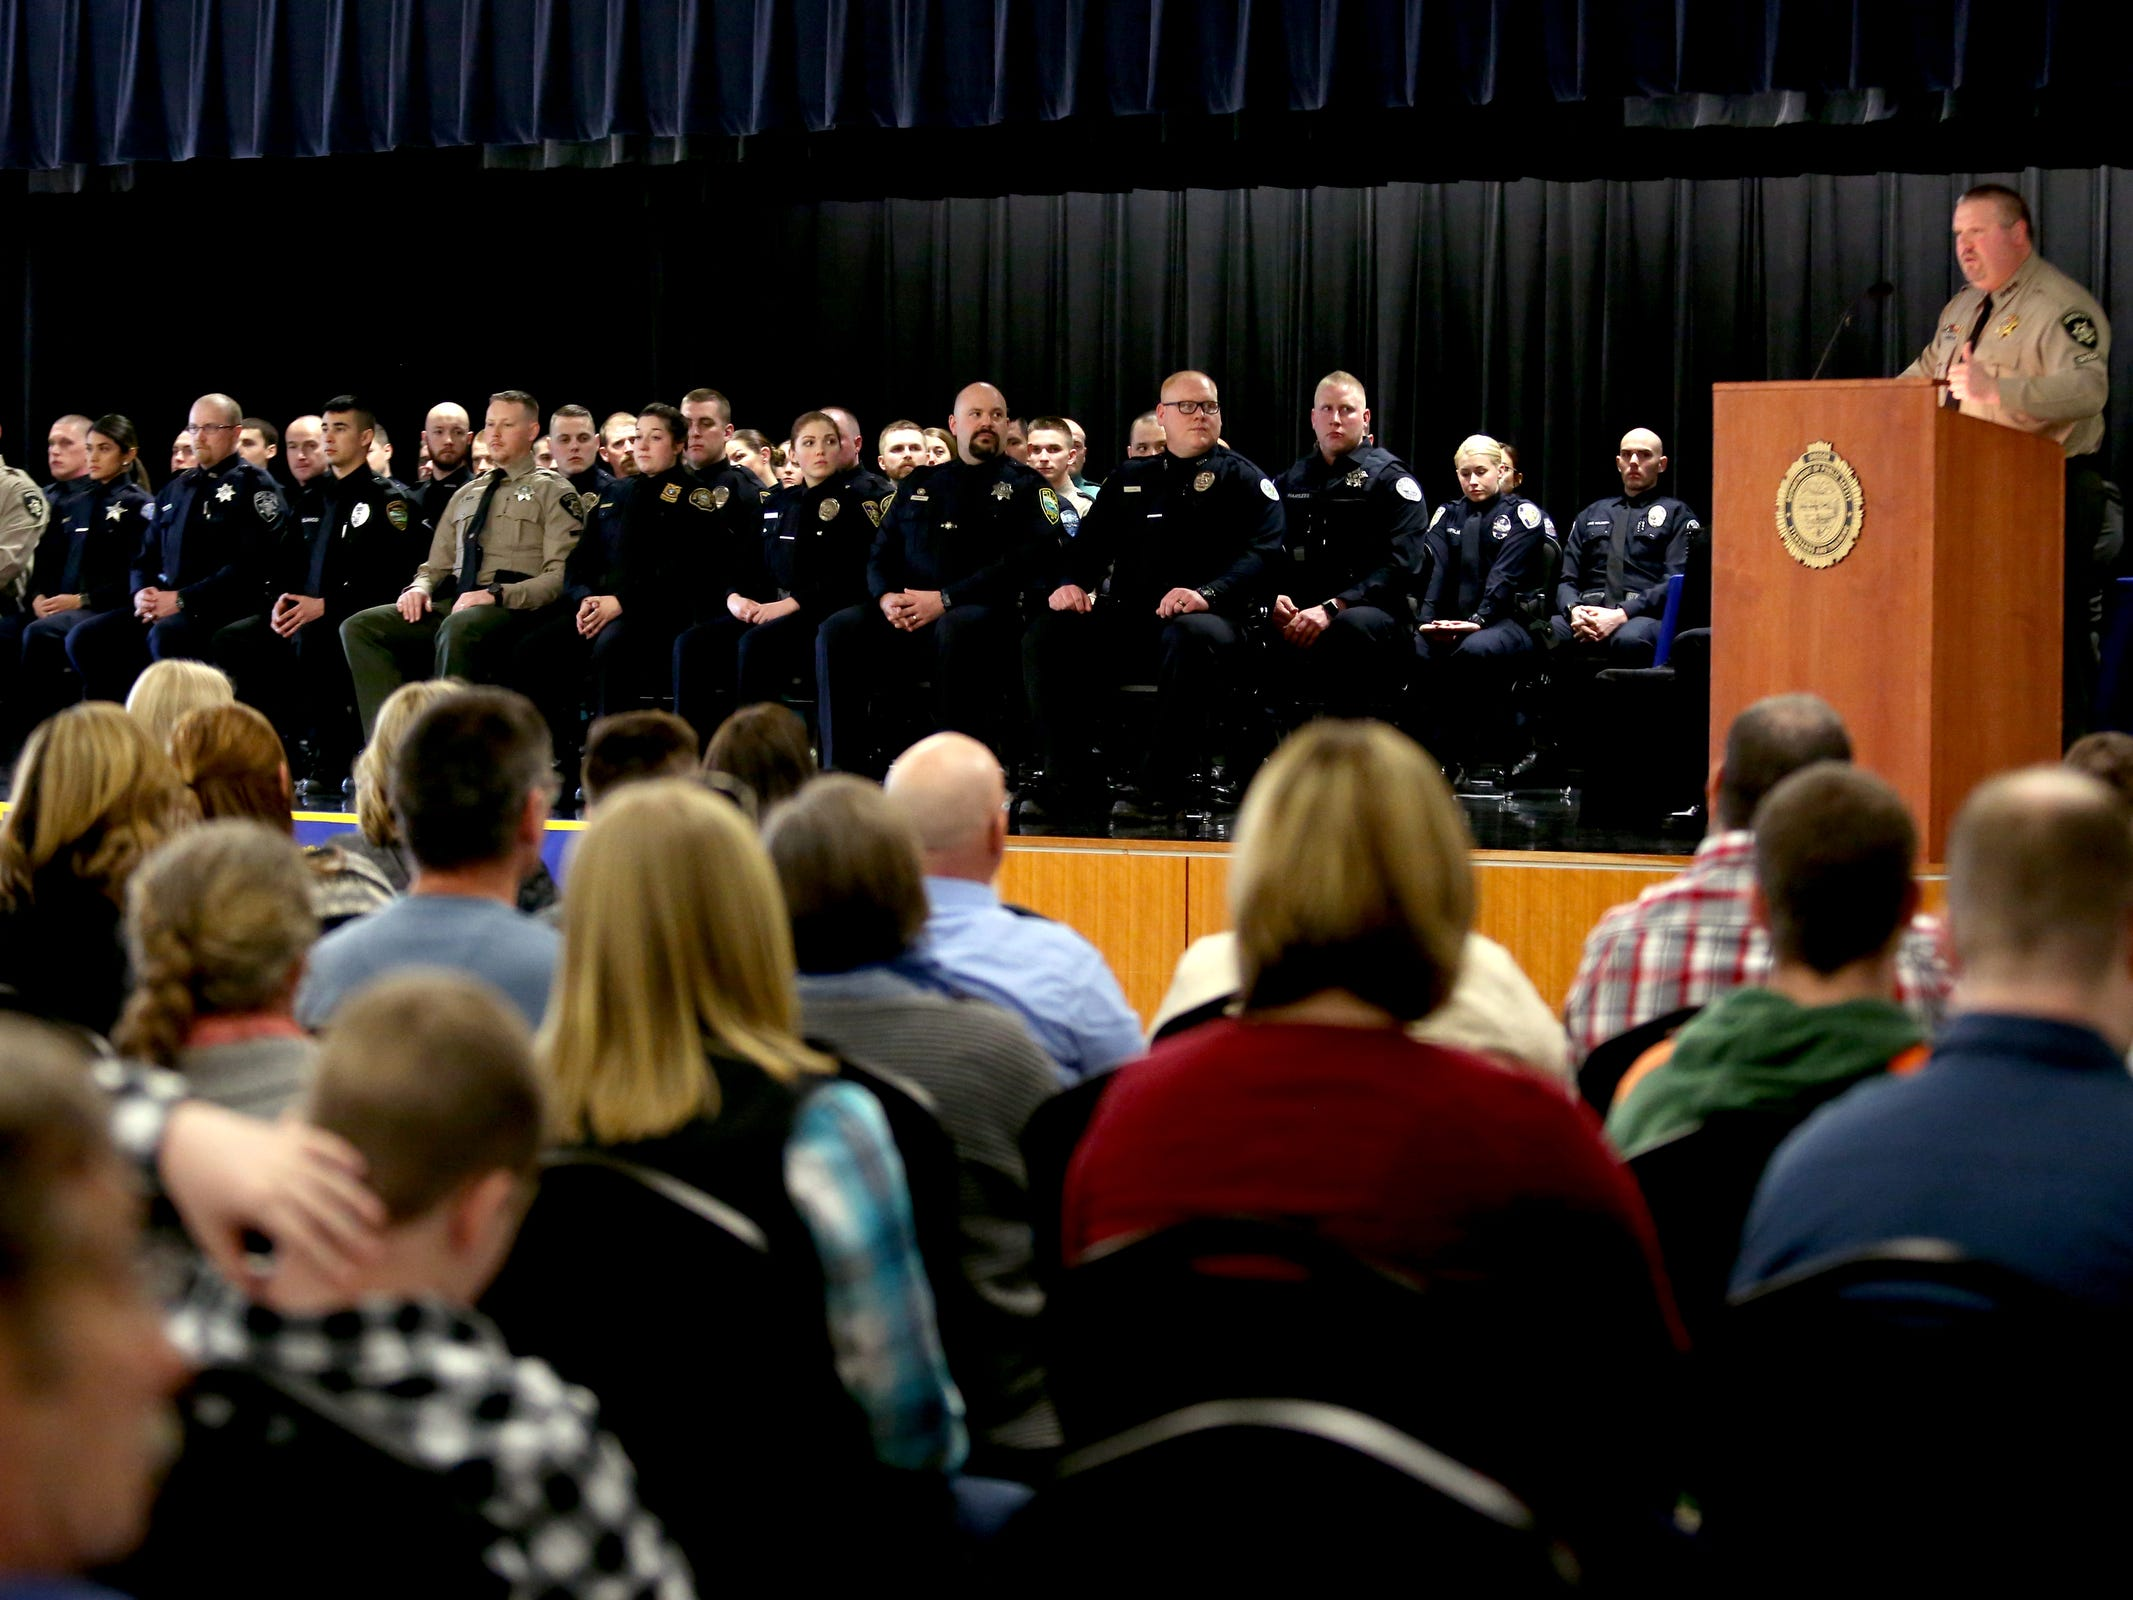 Hundreds attend a Basic Police Class graduation ceremony at the Department of Public Safety Standards and Training in Salem on March 15, 2019.